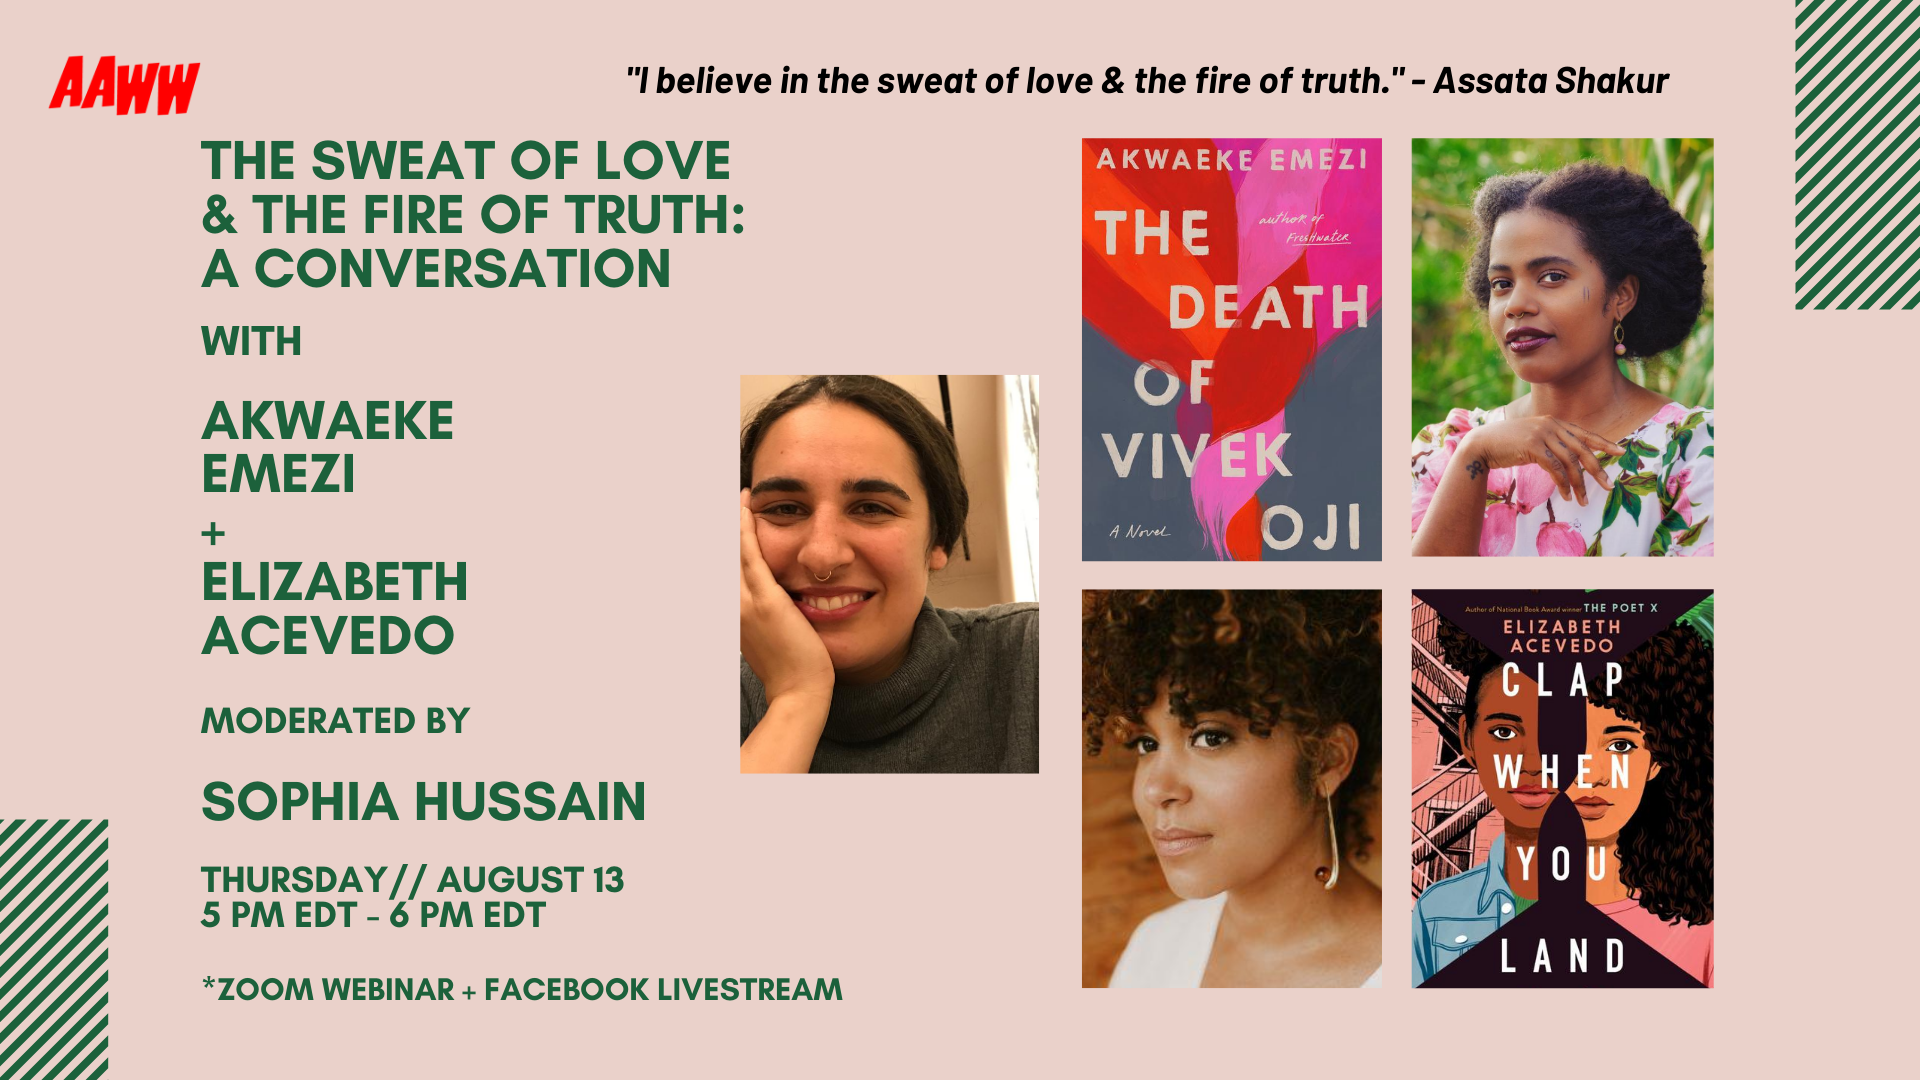 The Sweat of Love & the Fire of Truth: A Conversation